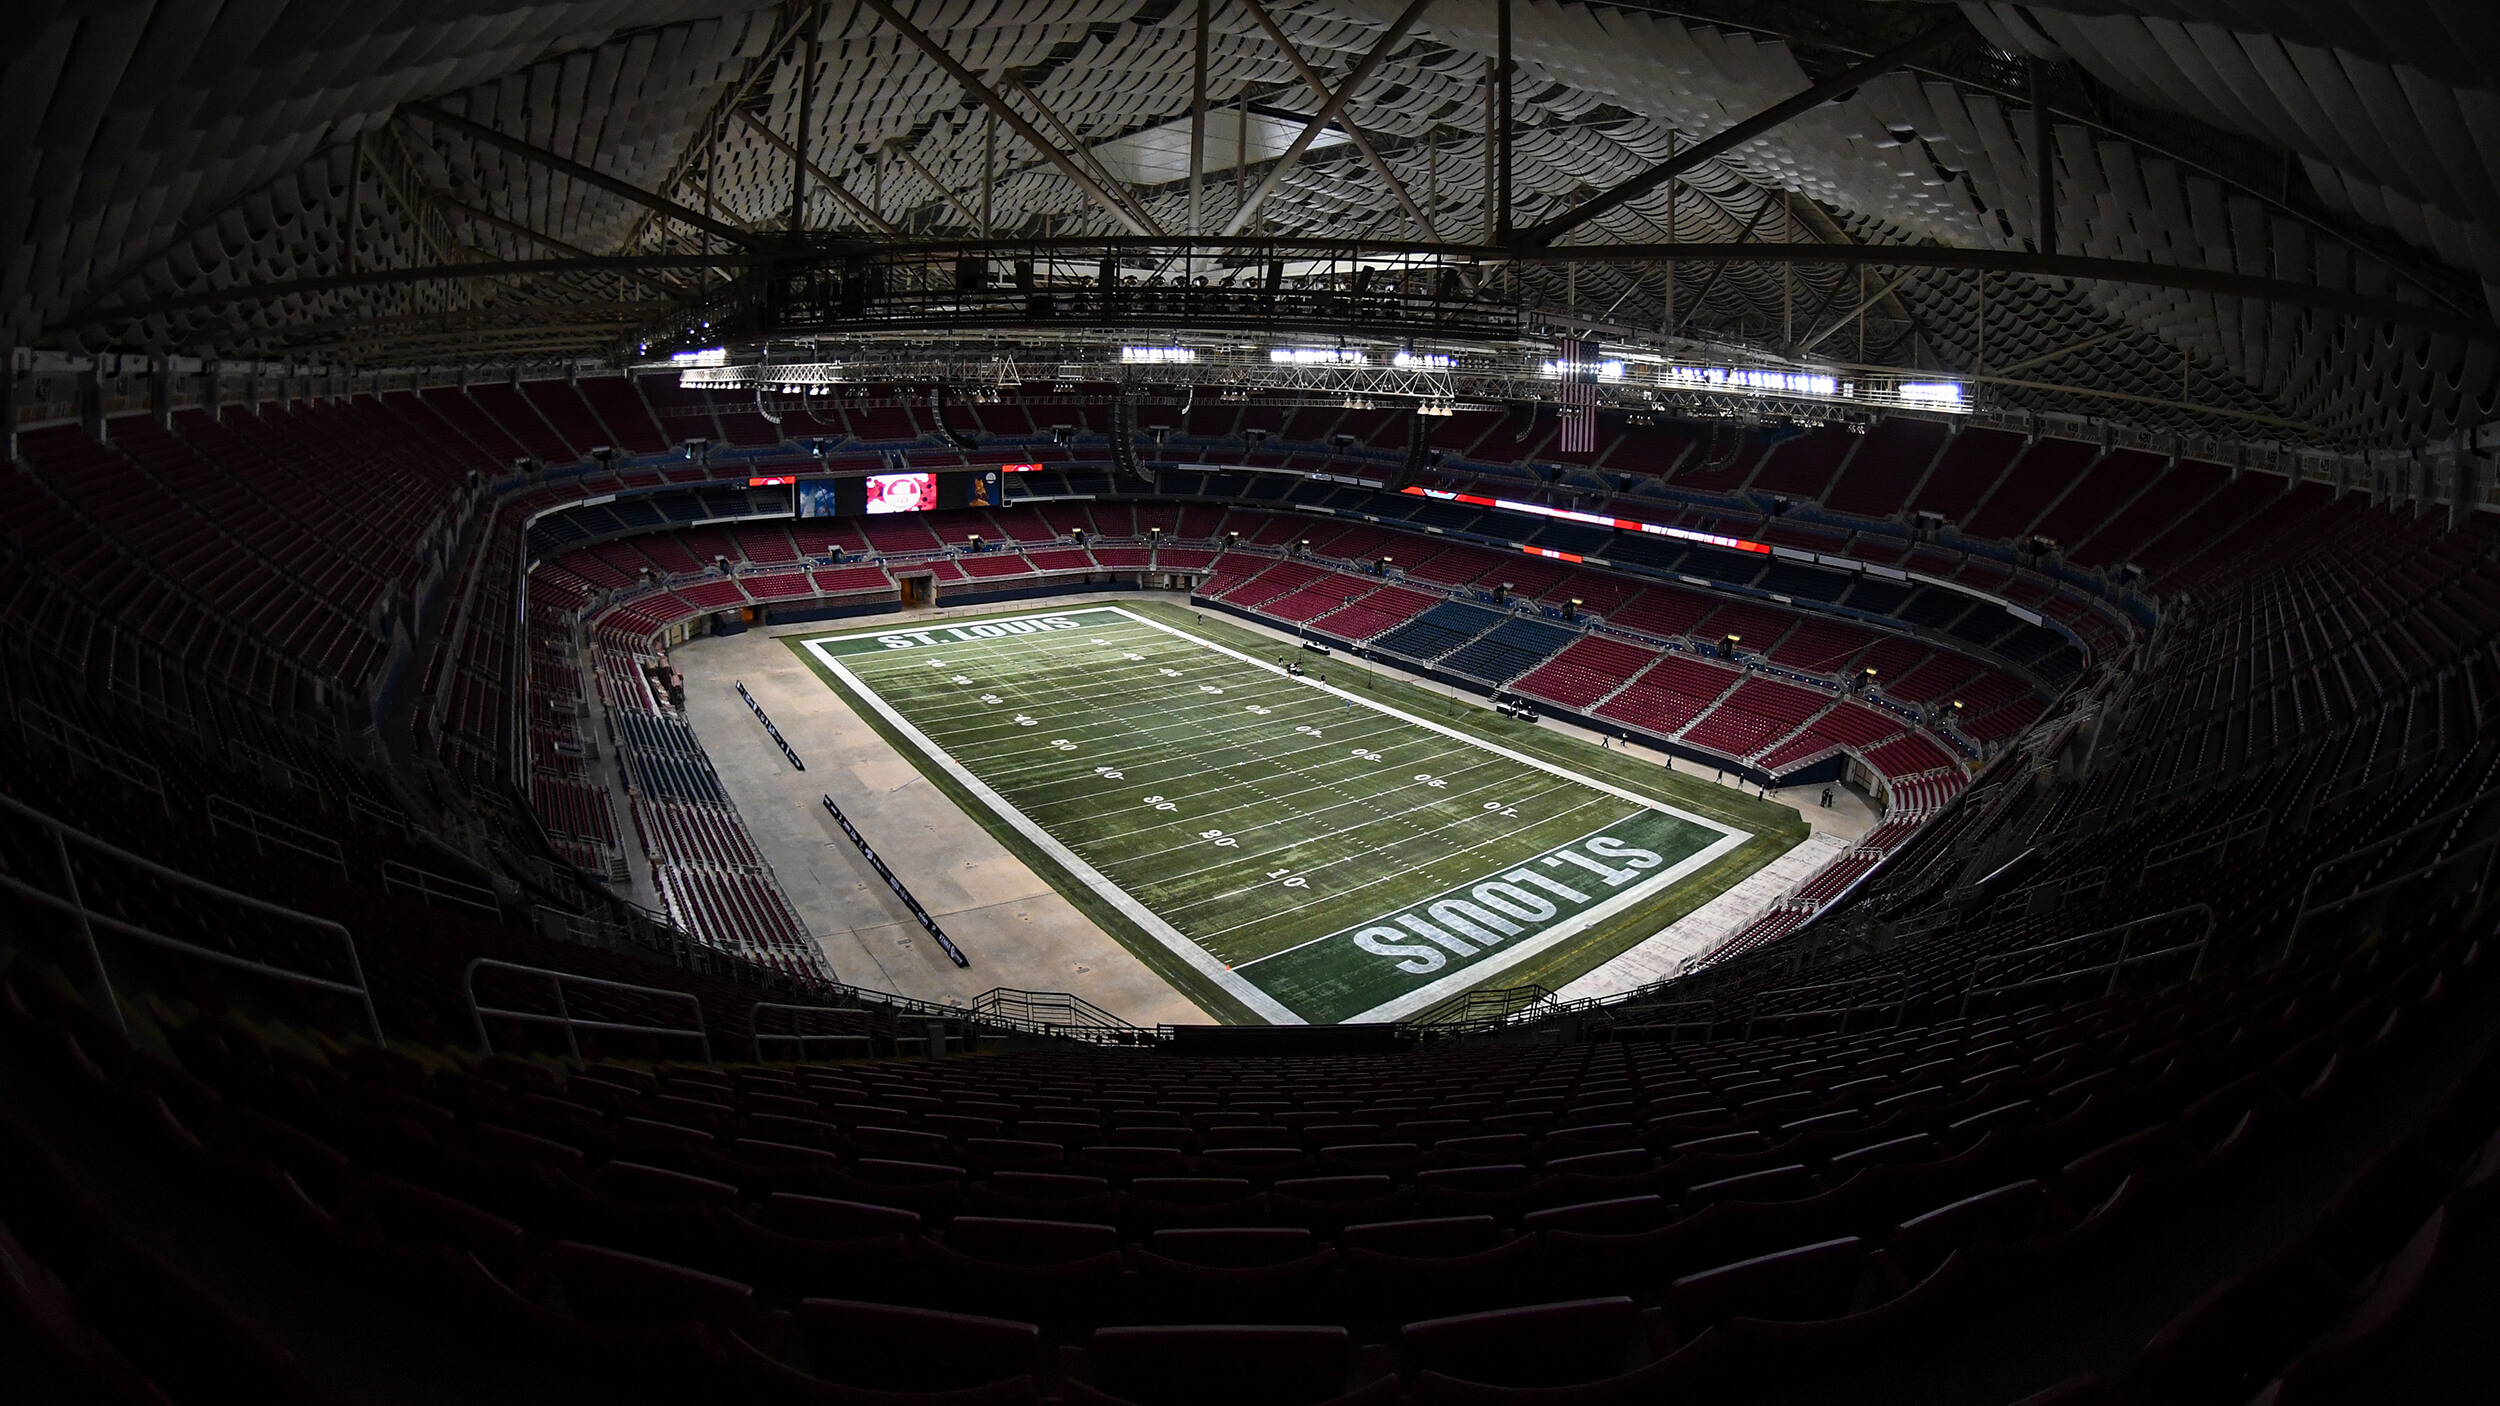 2020 DCI Tour will return to St. Louis' Dome